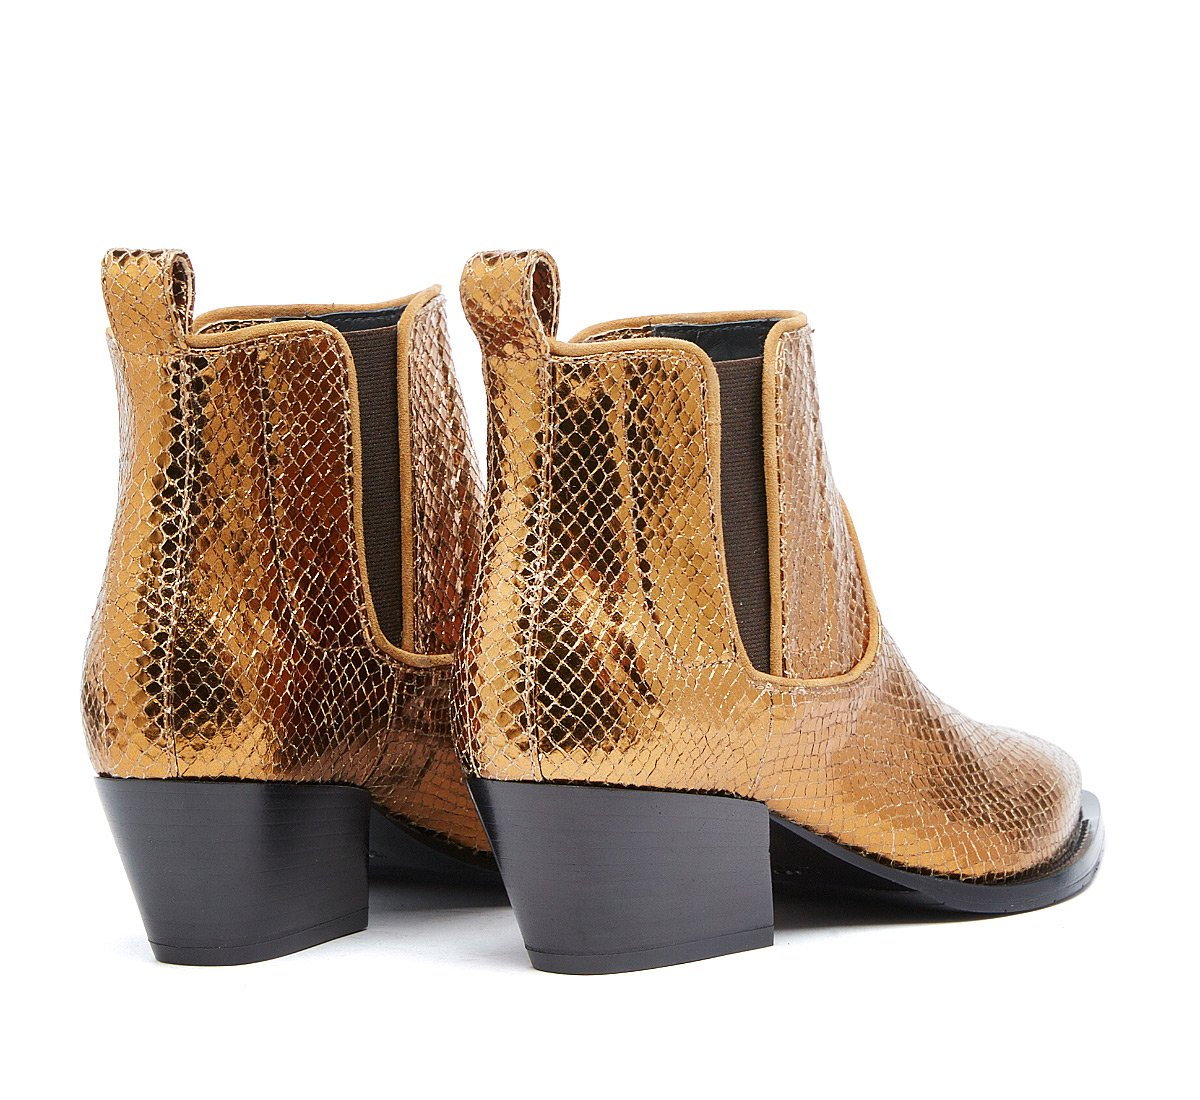 Texan ankle boots in laminated leather